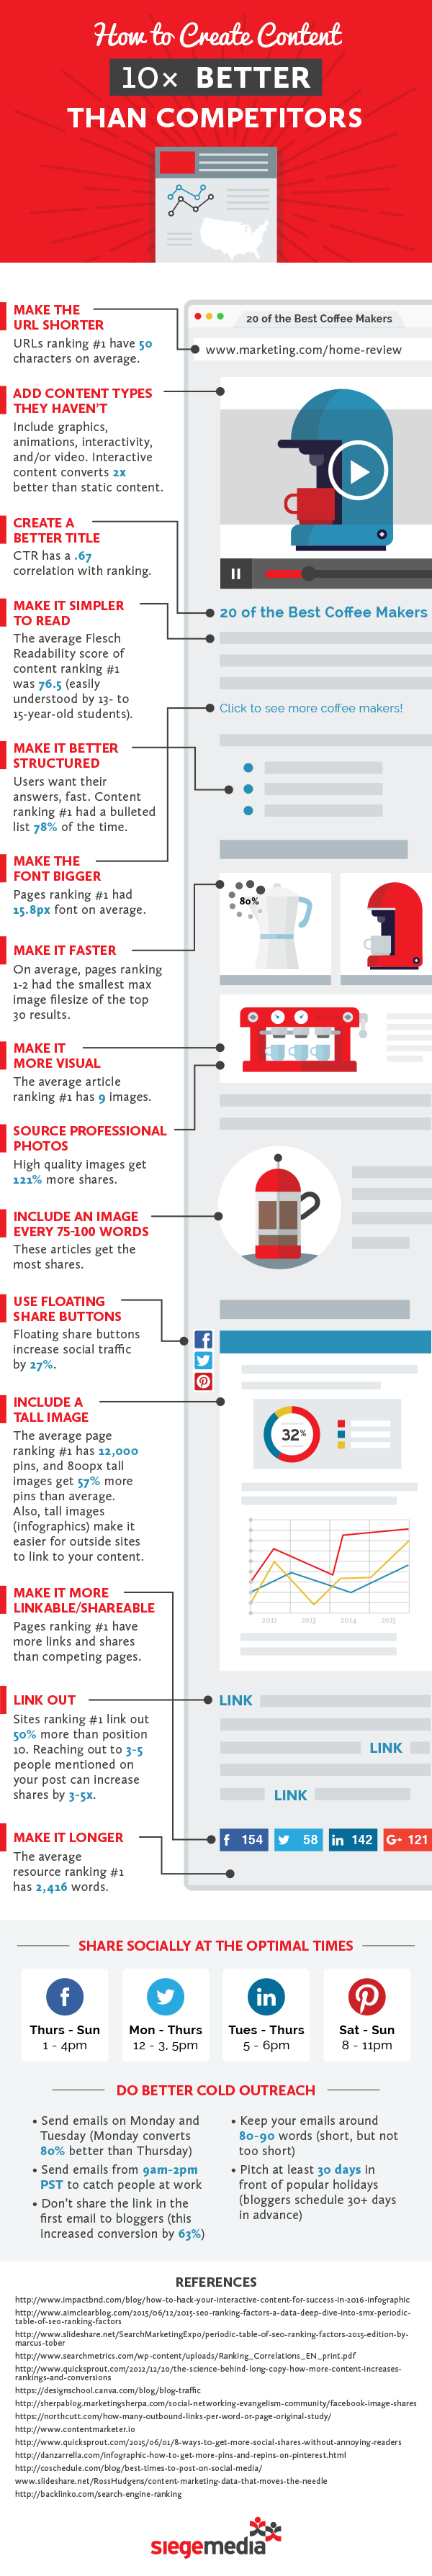 how-to-create-content-better-than-your-competitors-infographic